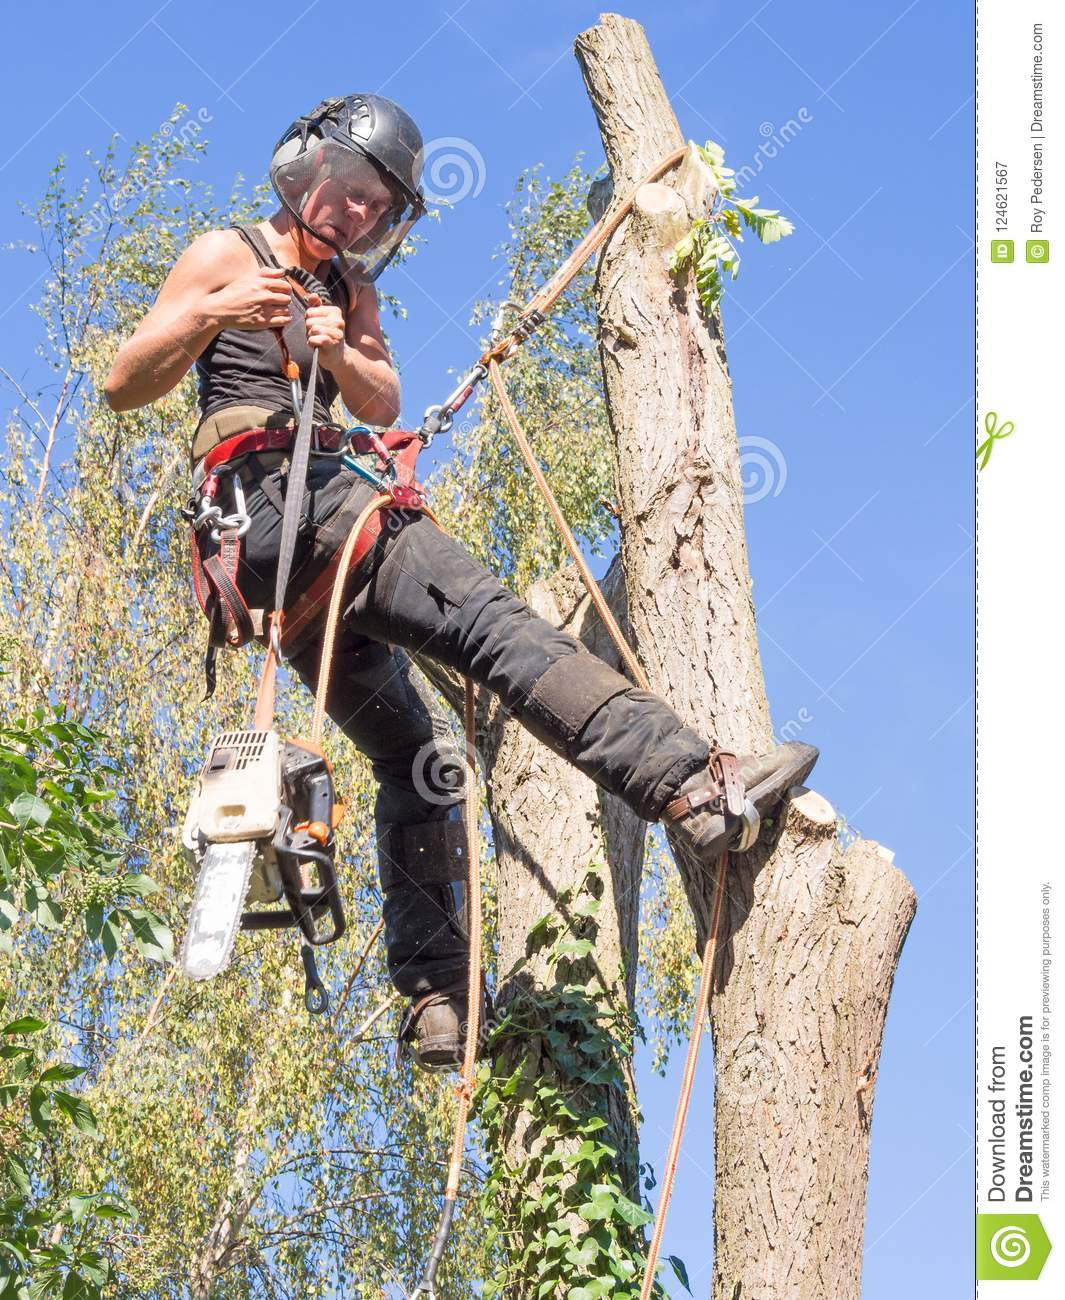 Using a chainsaw up a tree